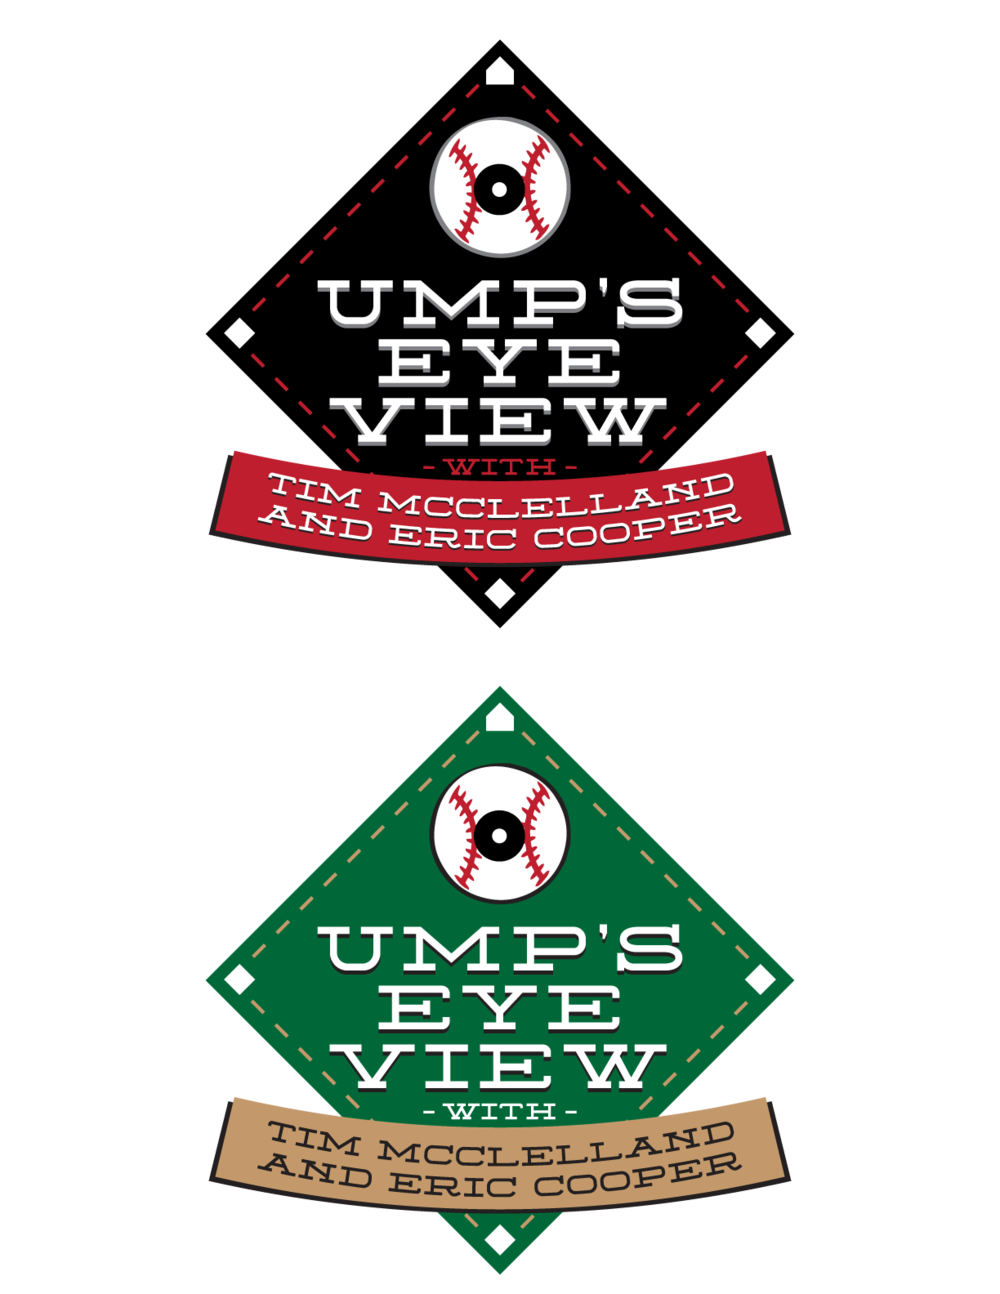 Ump's Eye View logo